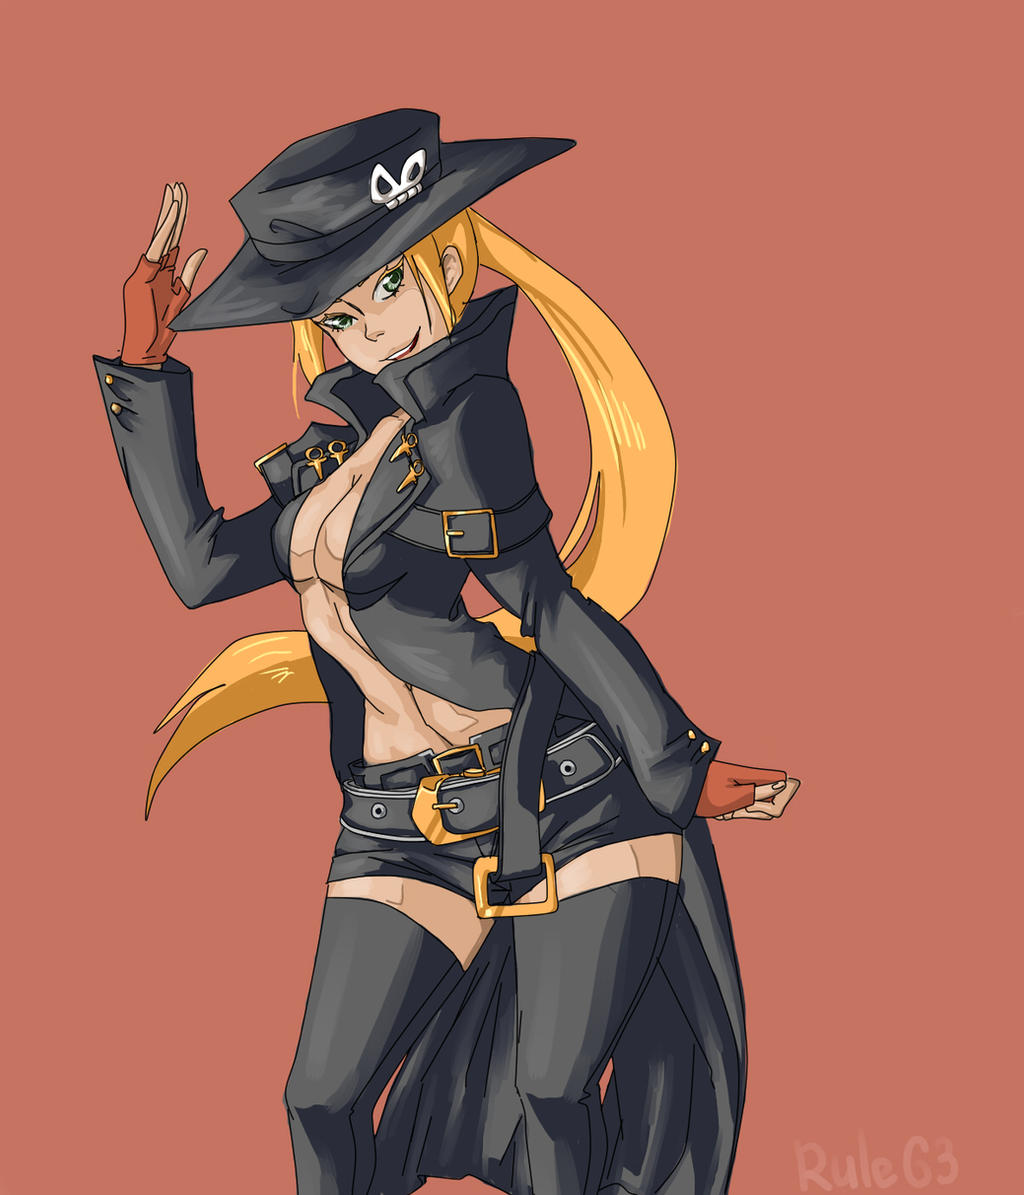 Guilty Gear Wallpaper: Guilty Gear (rule 63) By DemAltF4 On DeviantArt